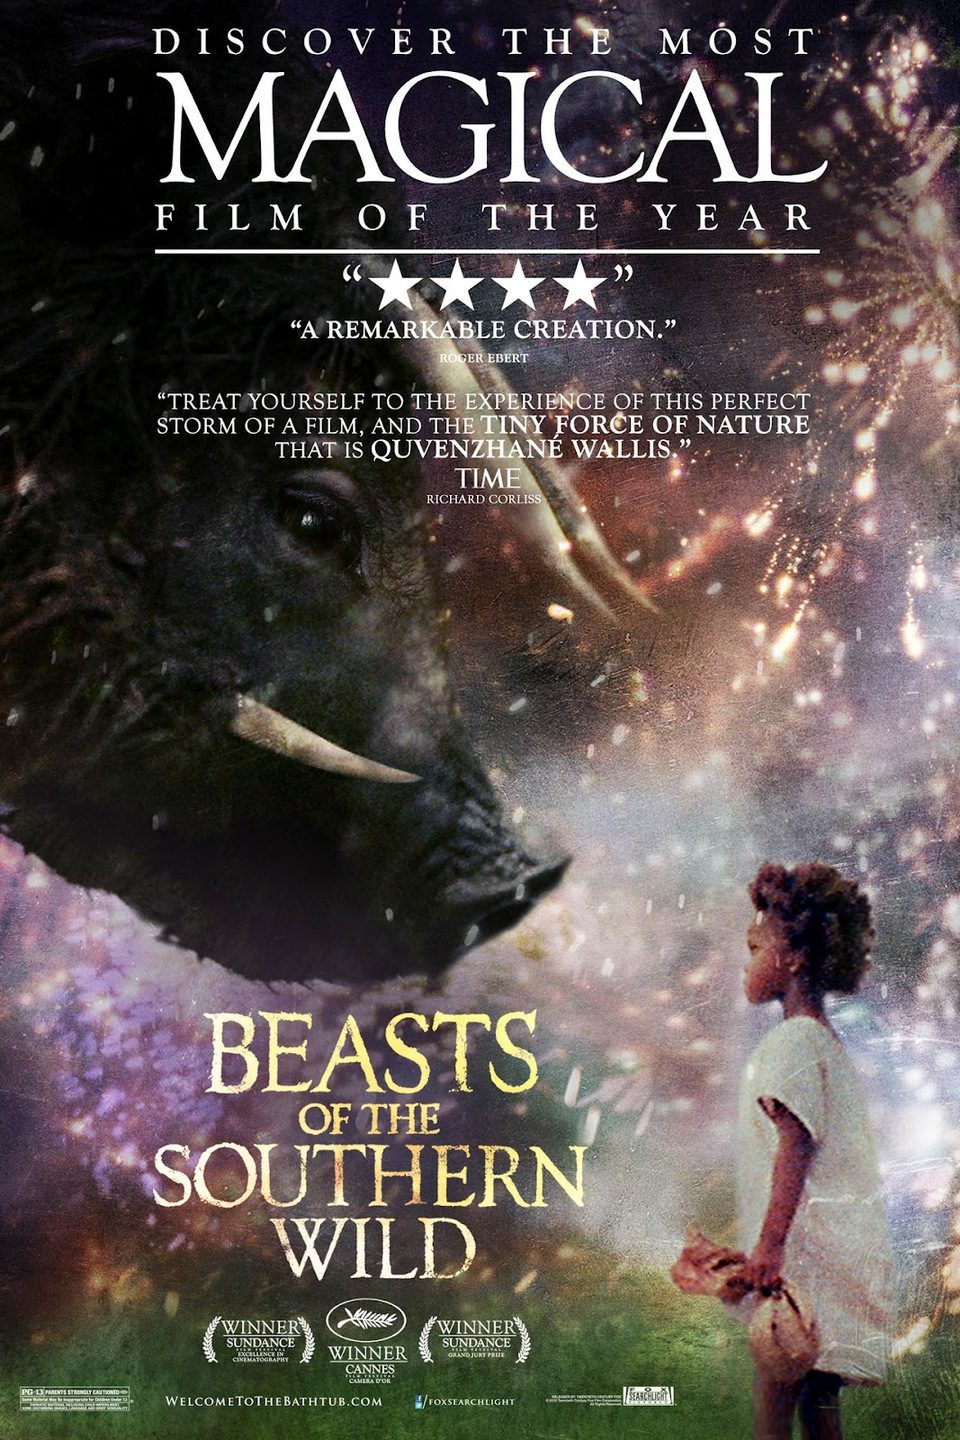 EEUU poster for Beasts of the Southern Wild